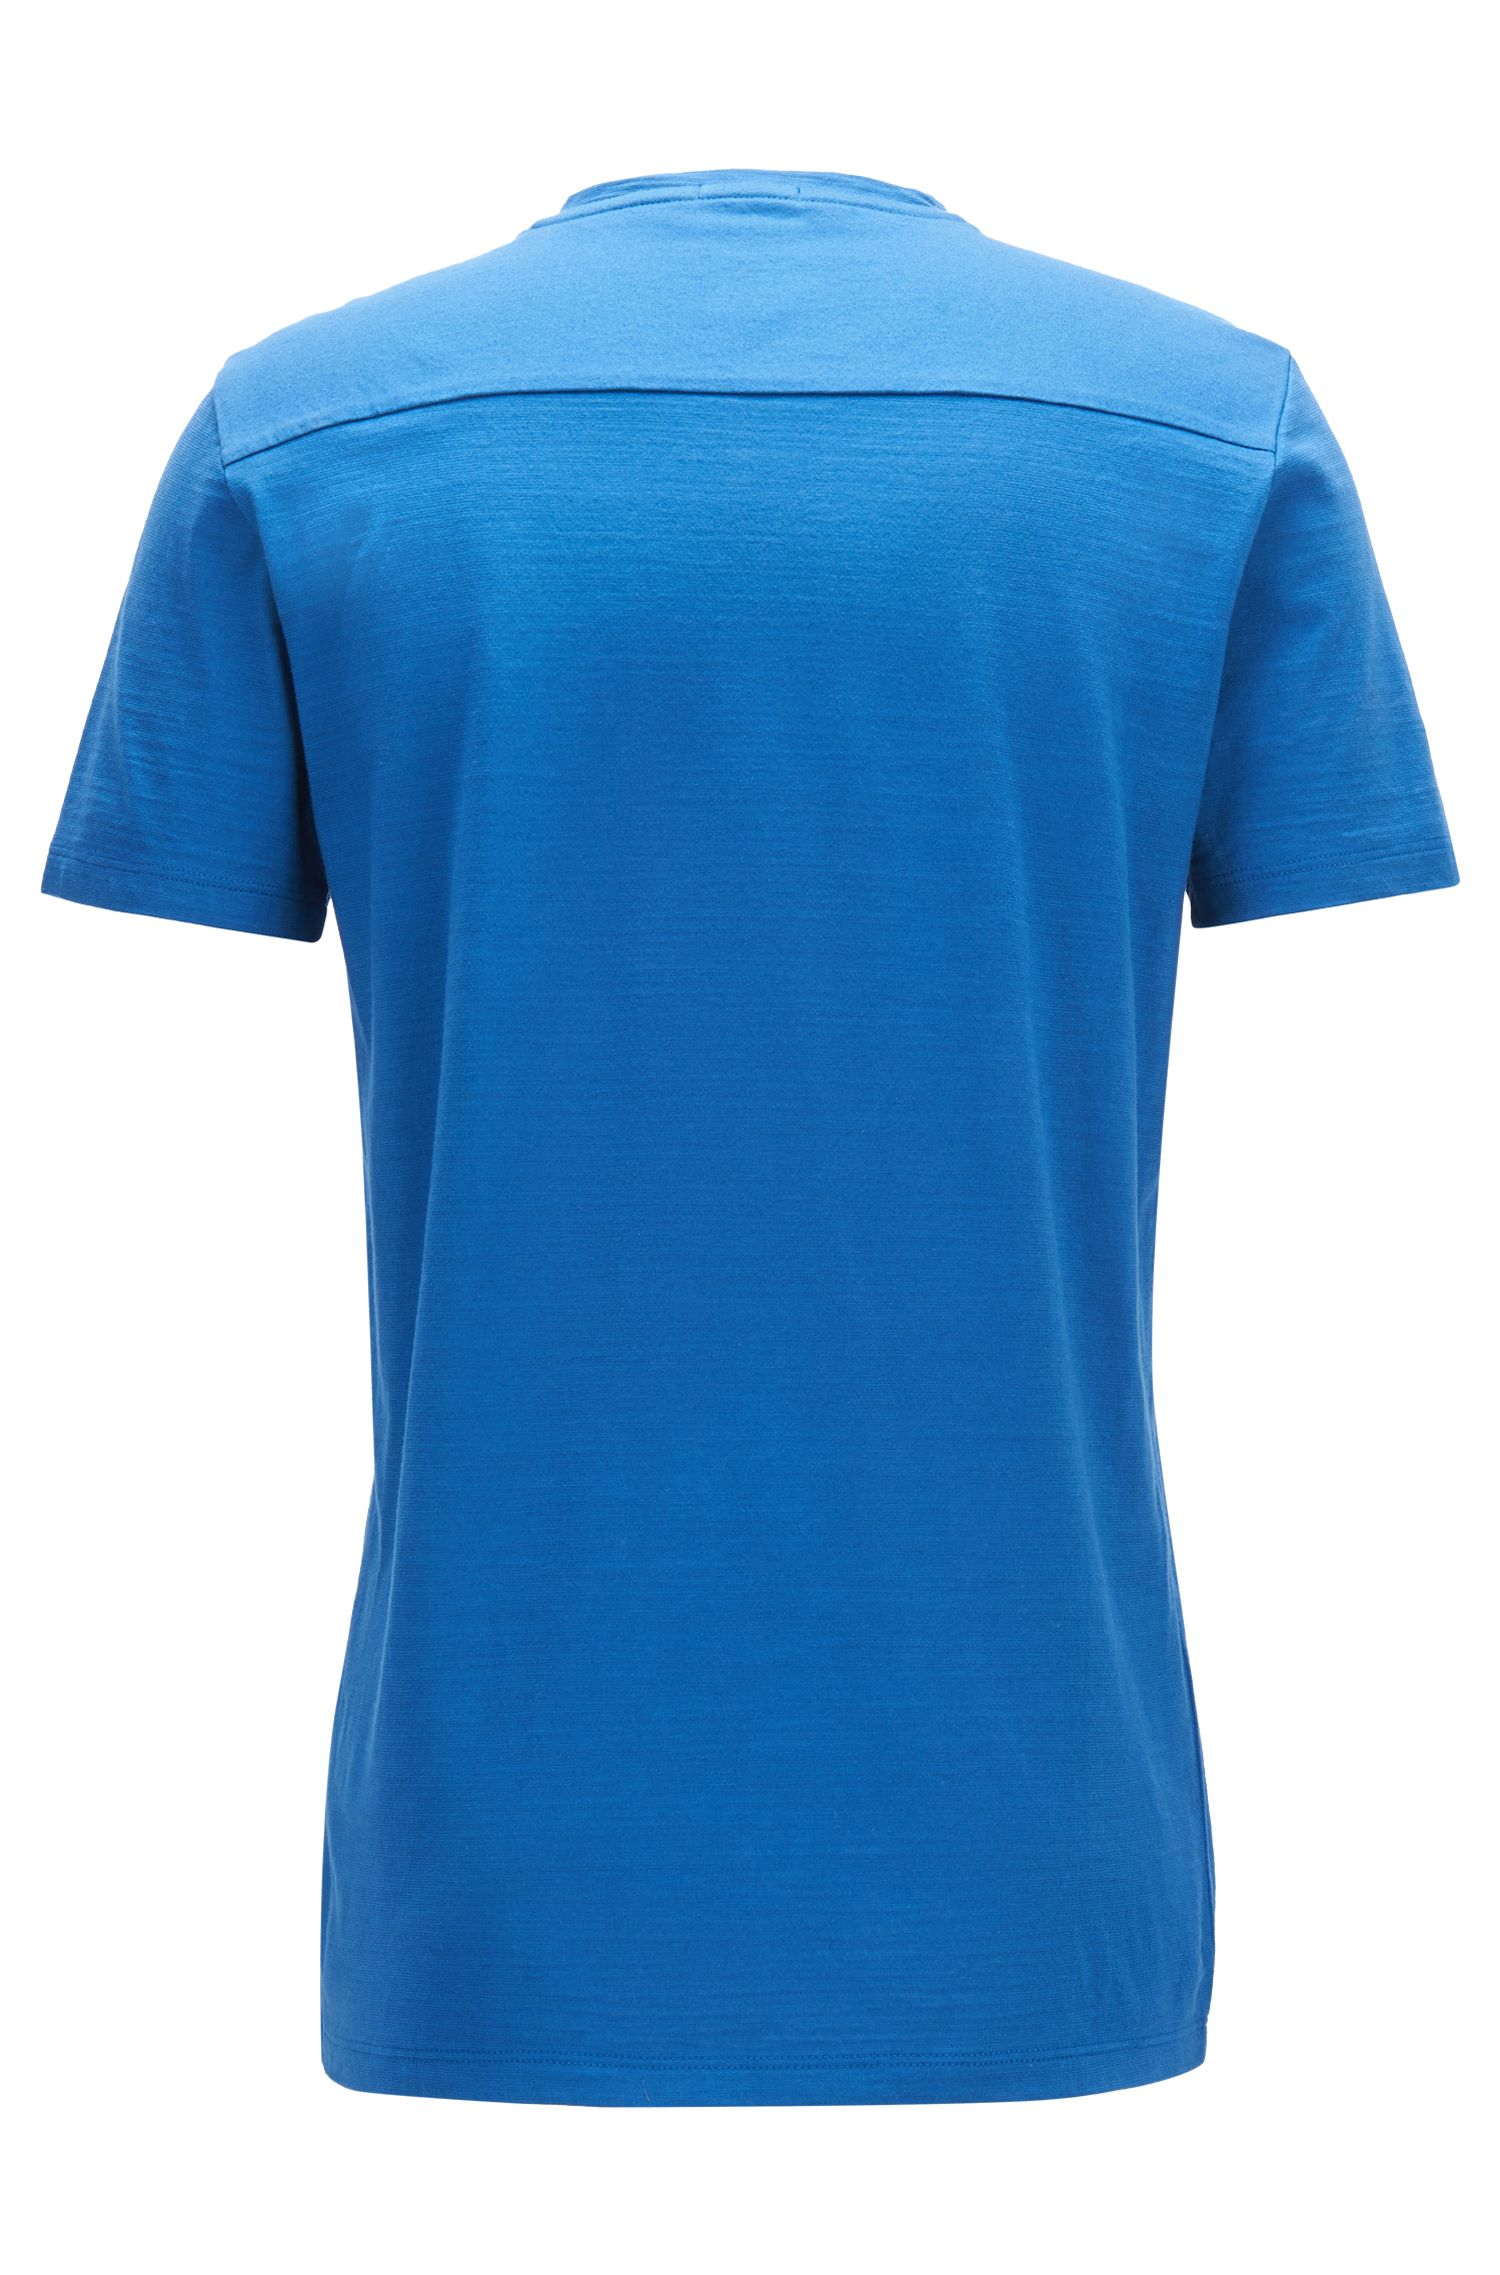 Regular-fit T-shirt in mercerised cotton